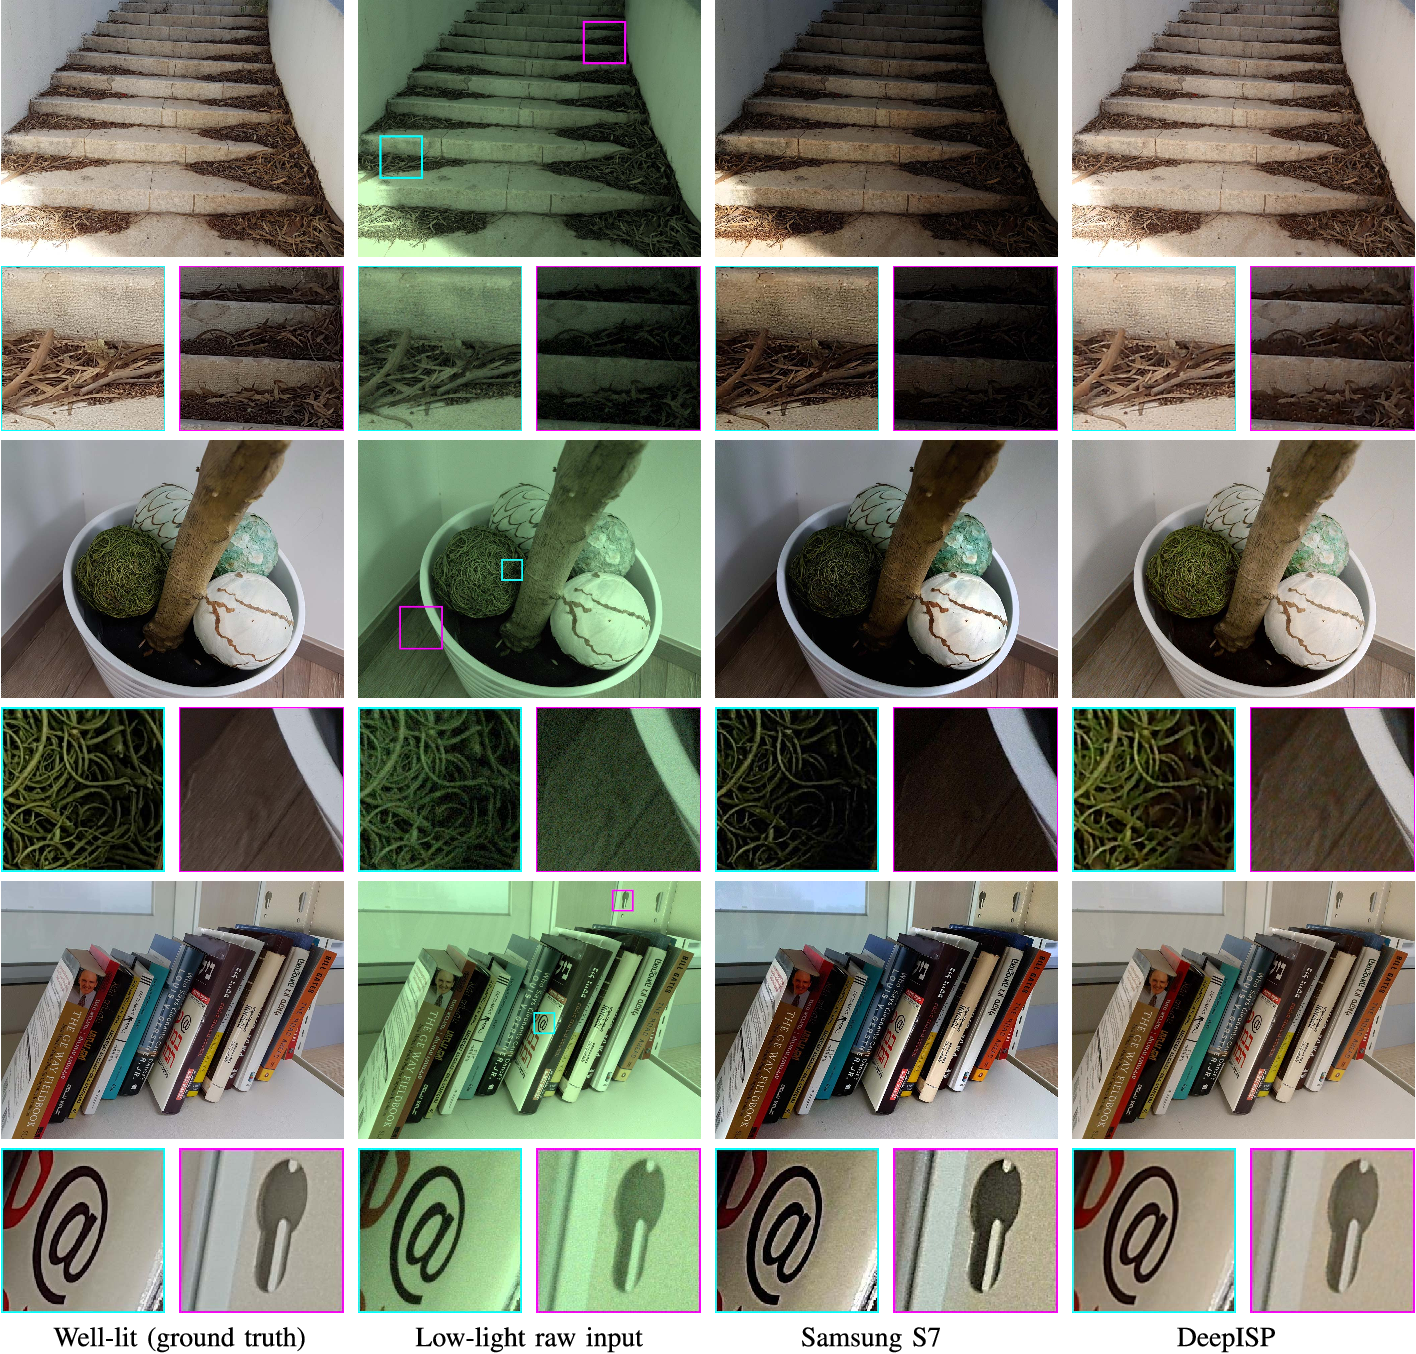 Figure 4 for DeepISP: Learning End-to-End Image Processing Pipeline